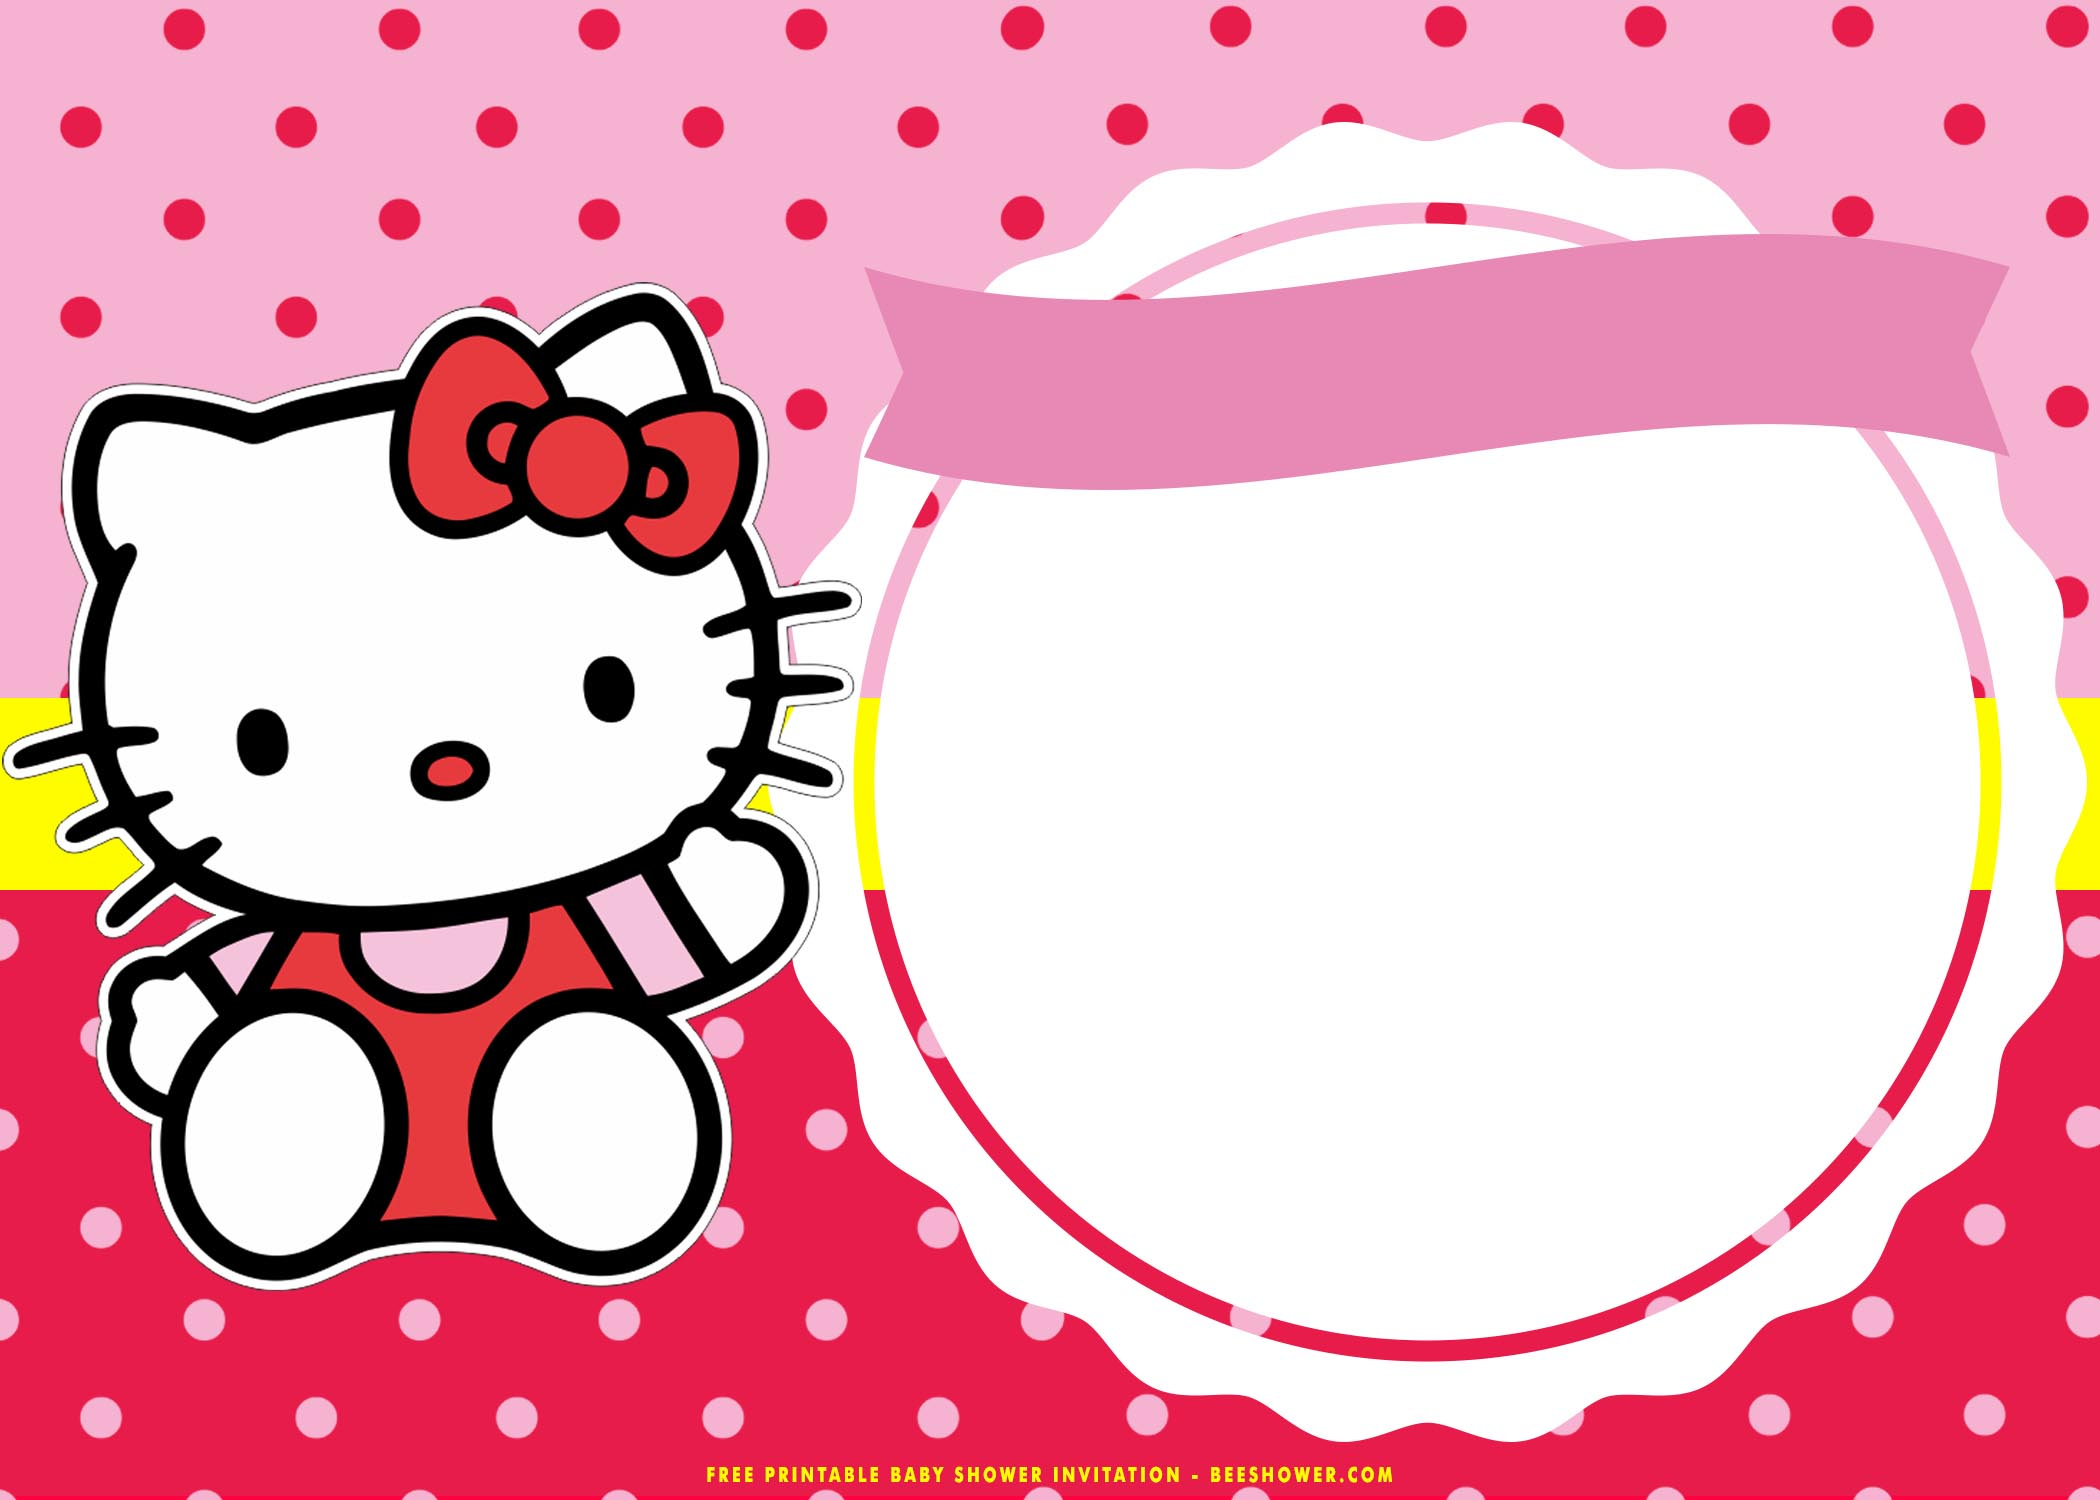 Free Printable Hello Kitty Worksheets Printable Worksheets And Activities For Teachers Parents Tutors And Homeschool Families